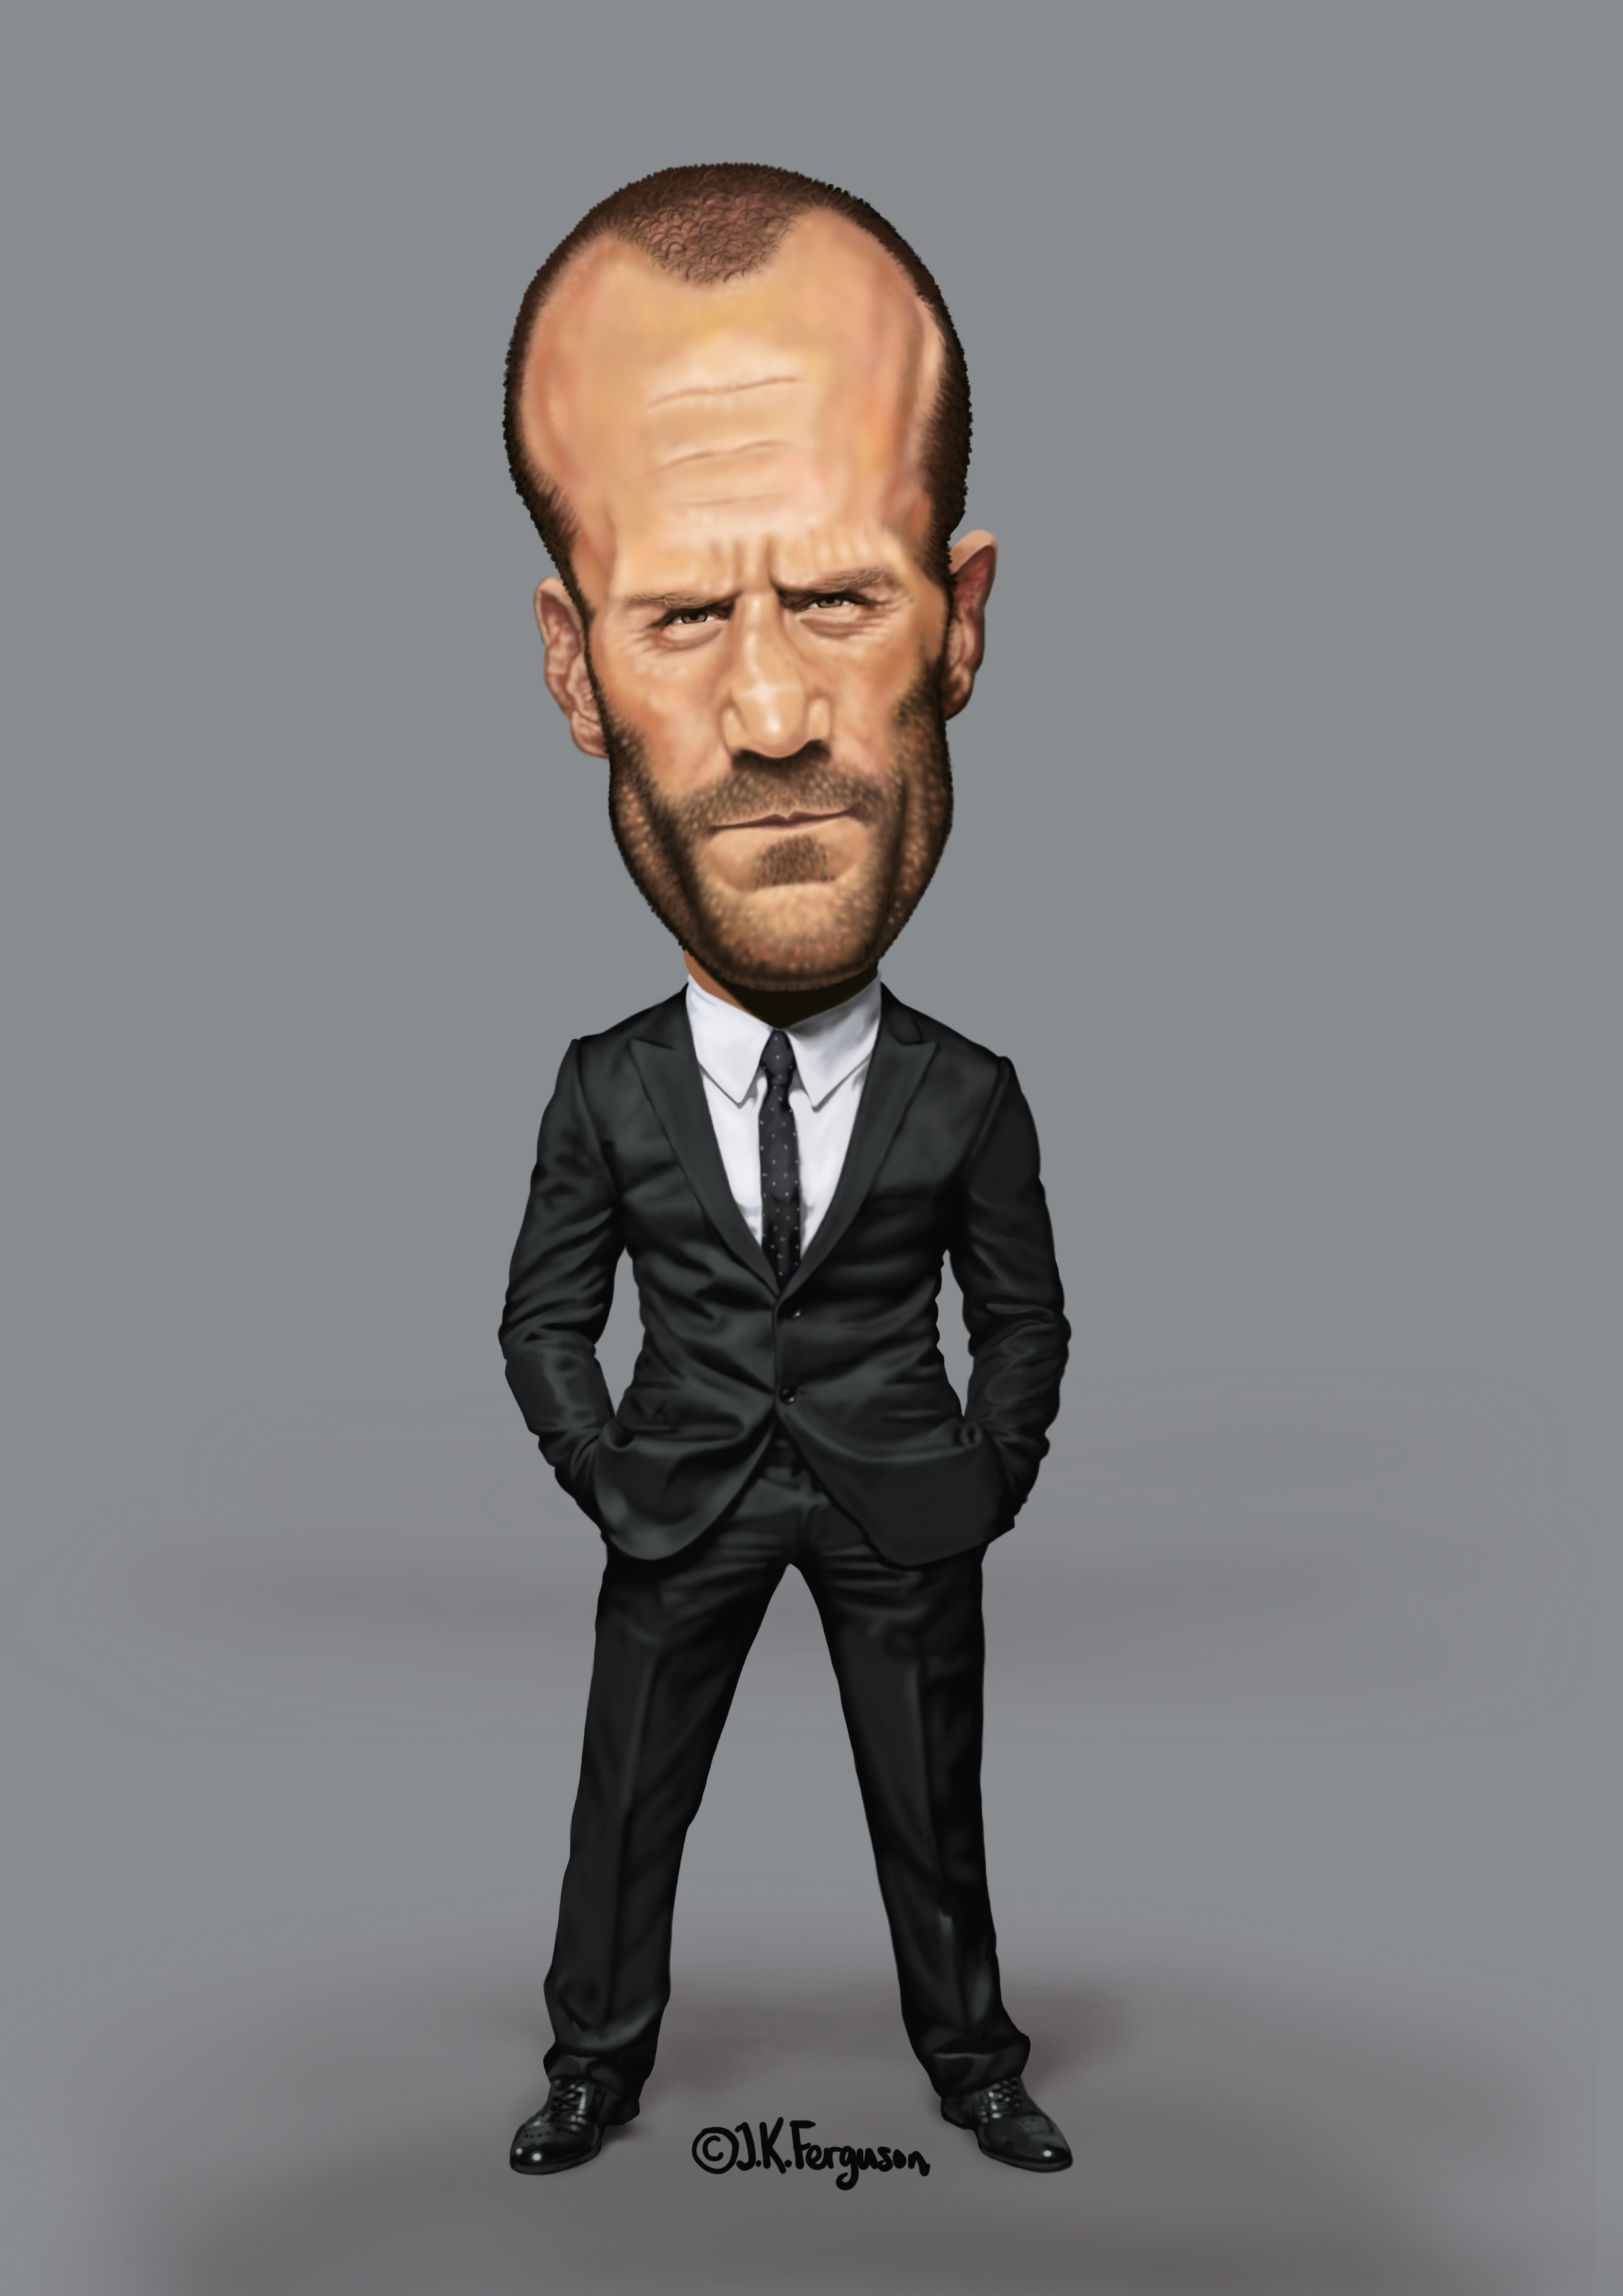 Caricature of Jason Statham